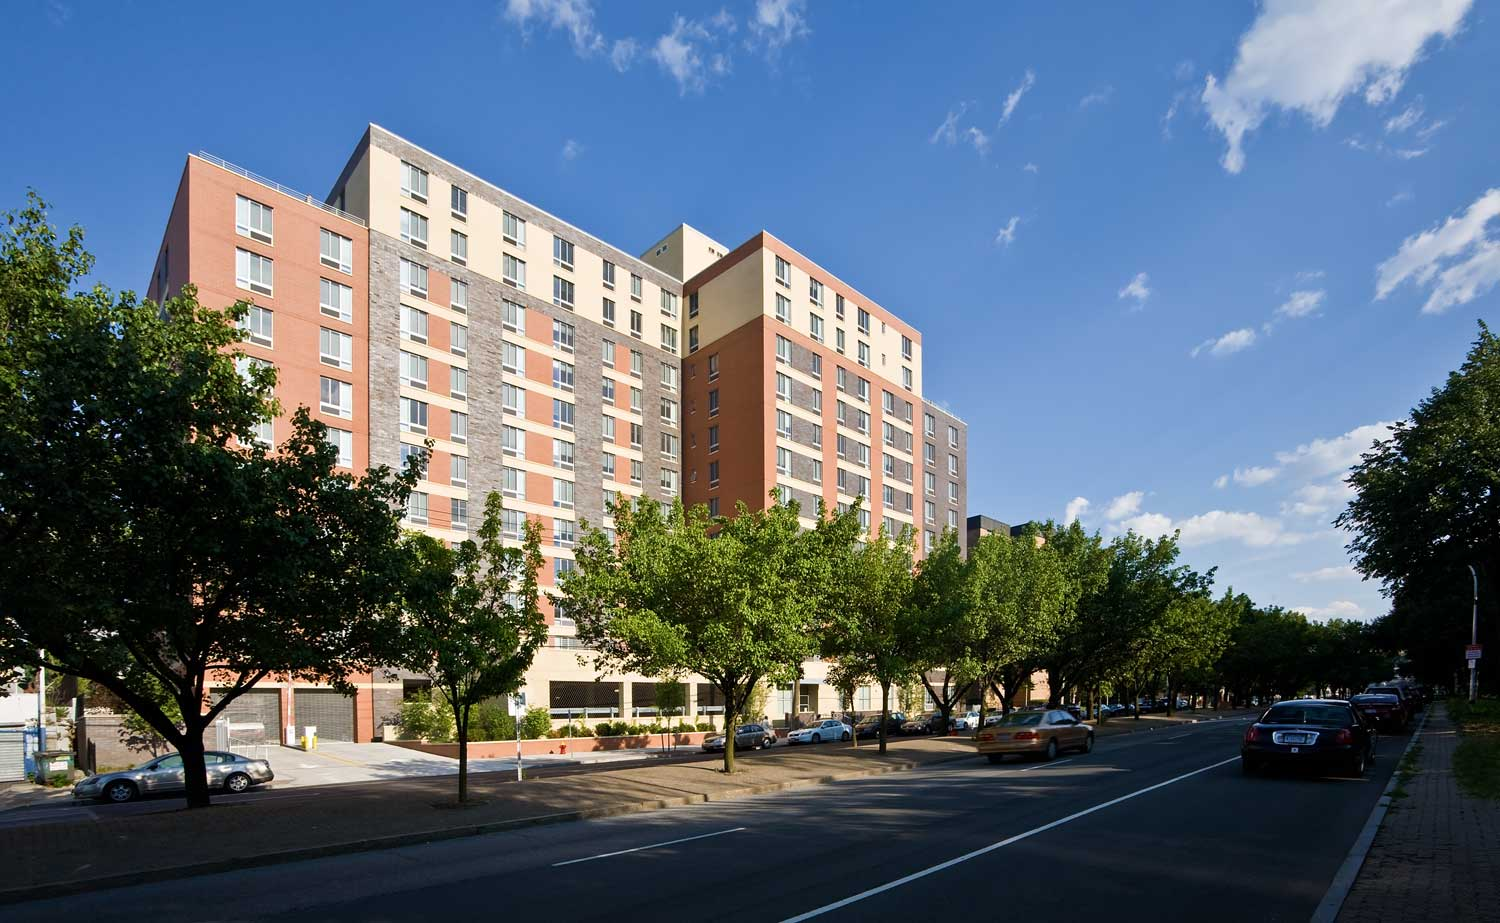 Riverdale Ave in Yonkers is a multi-family residential new construction by OCV Architects.